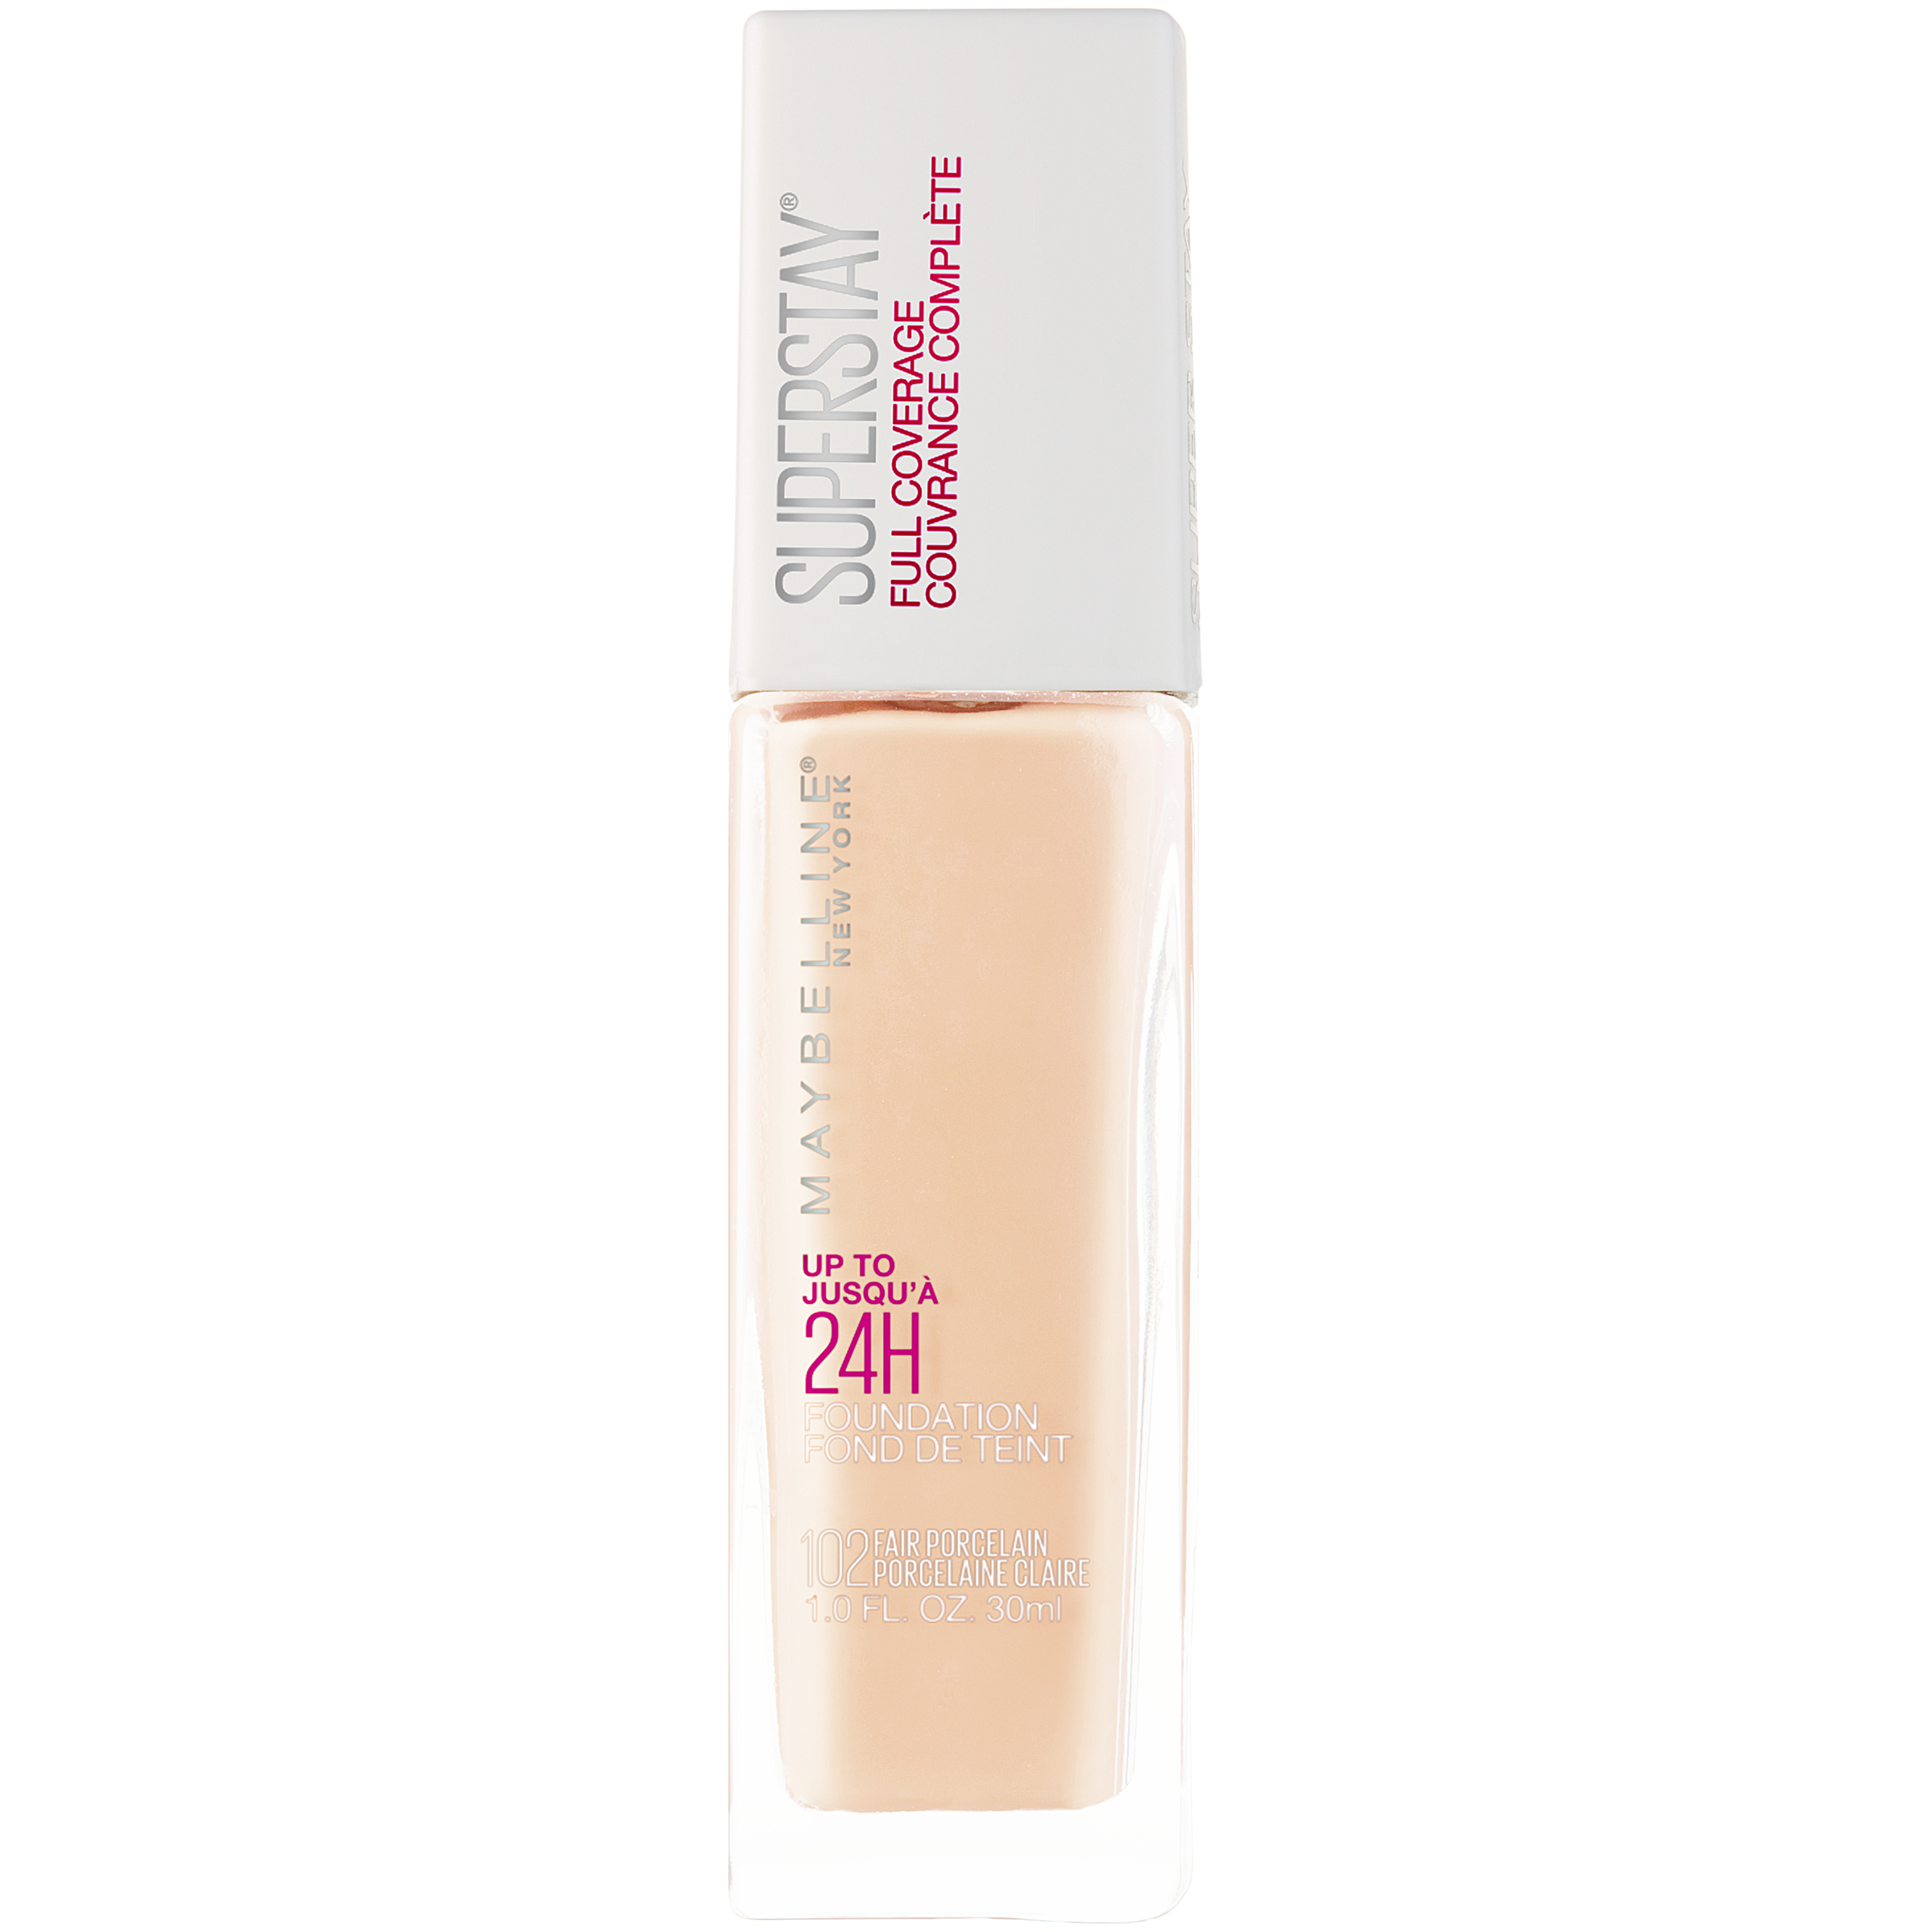 Maybelline Superstay Foundation Color Chart Wiring Diagrams Light Laser Led Gt Xenon Circuits Simple Strobe Circuit L12379 Super Stay Full Coverage Walmart Com Rh Colour